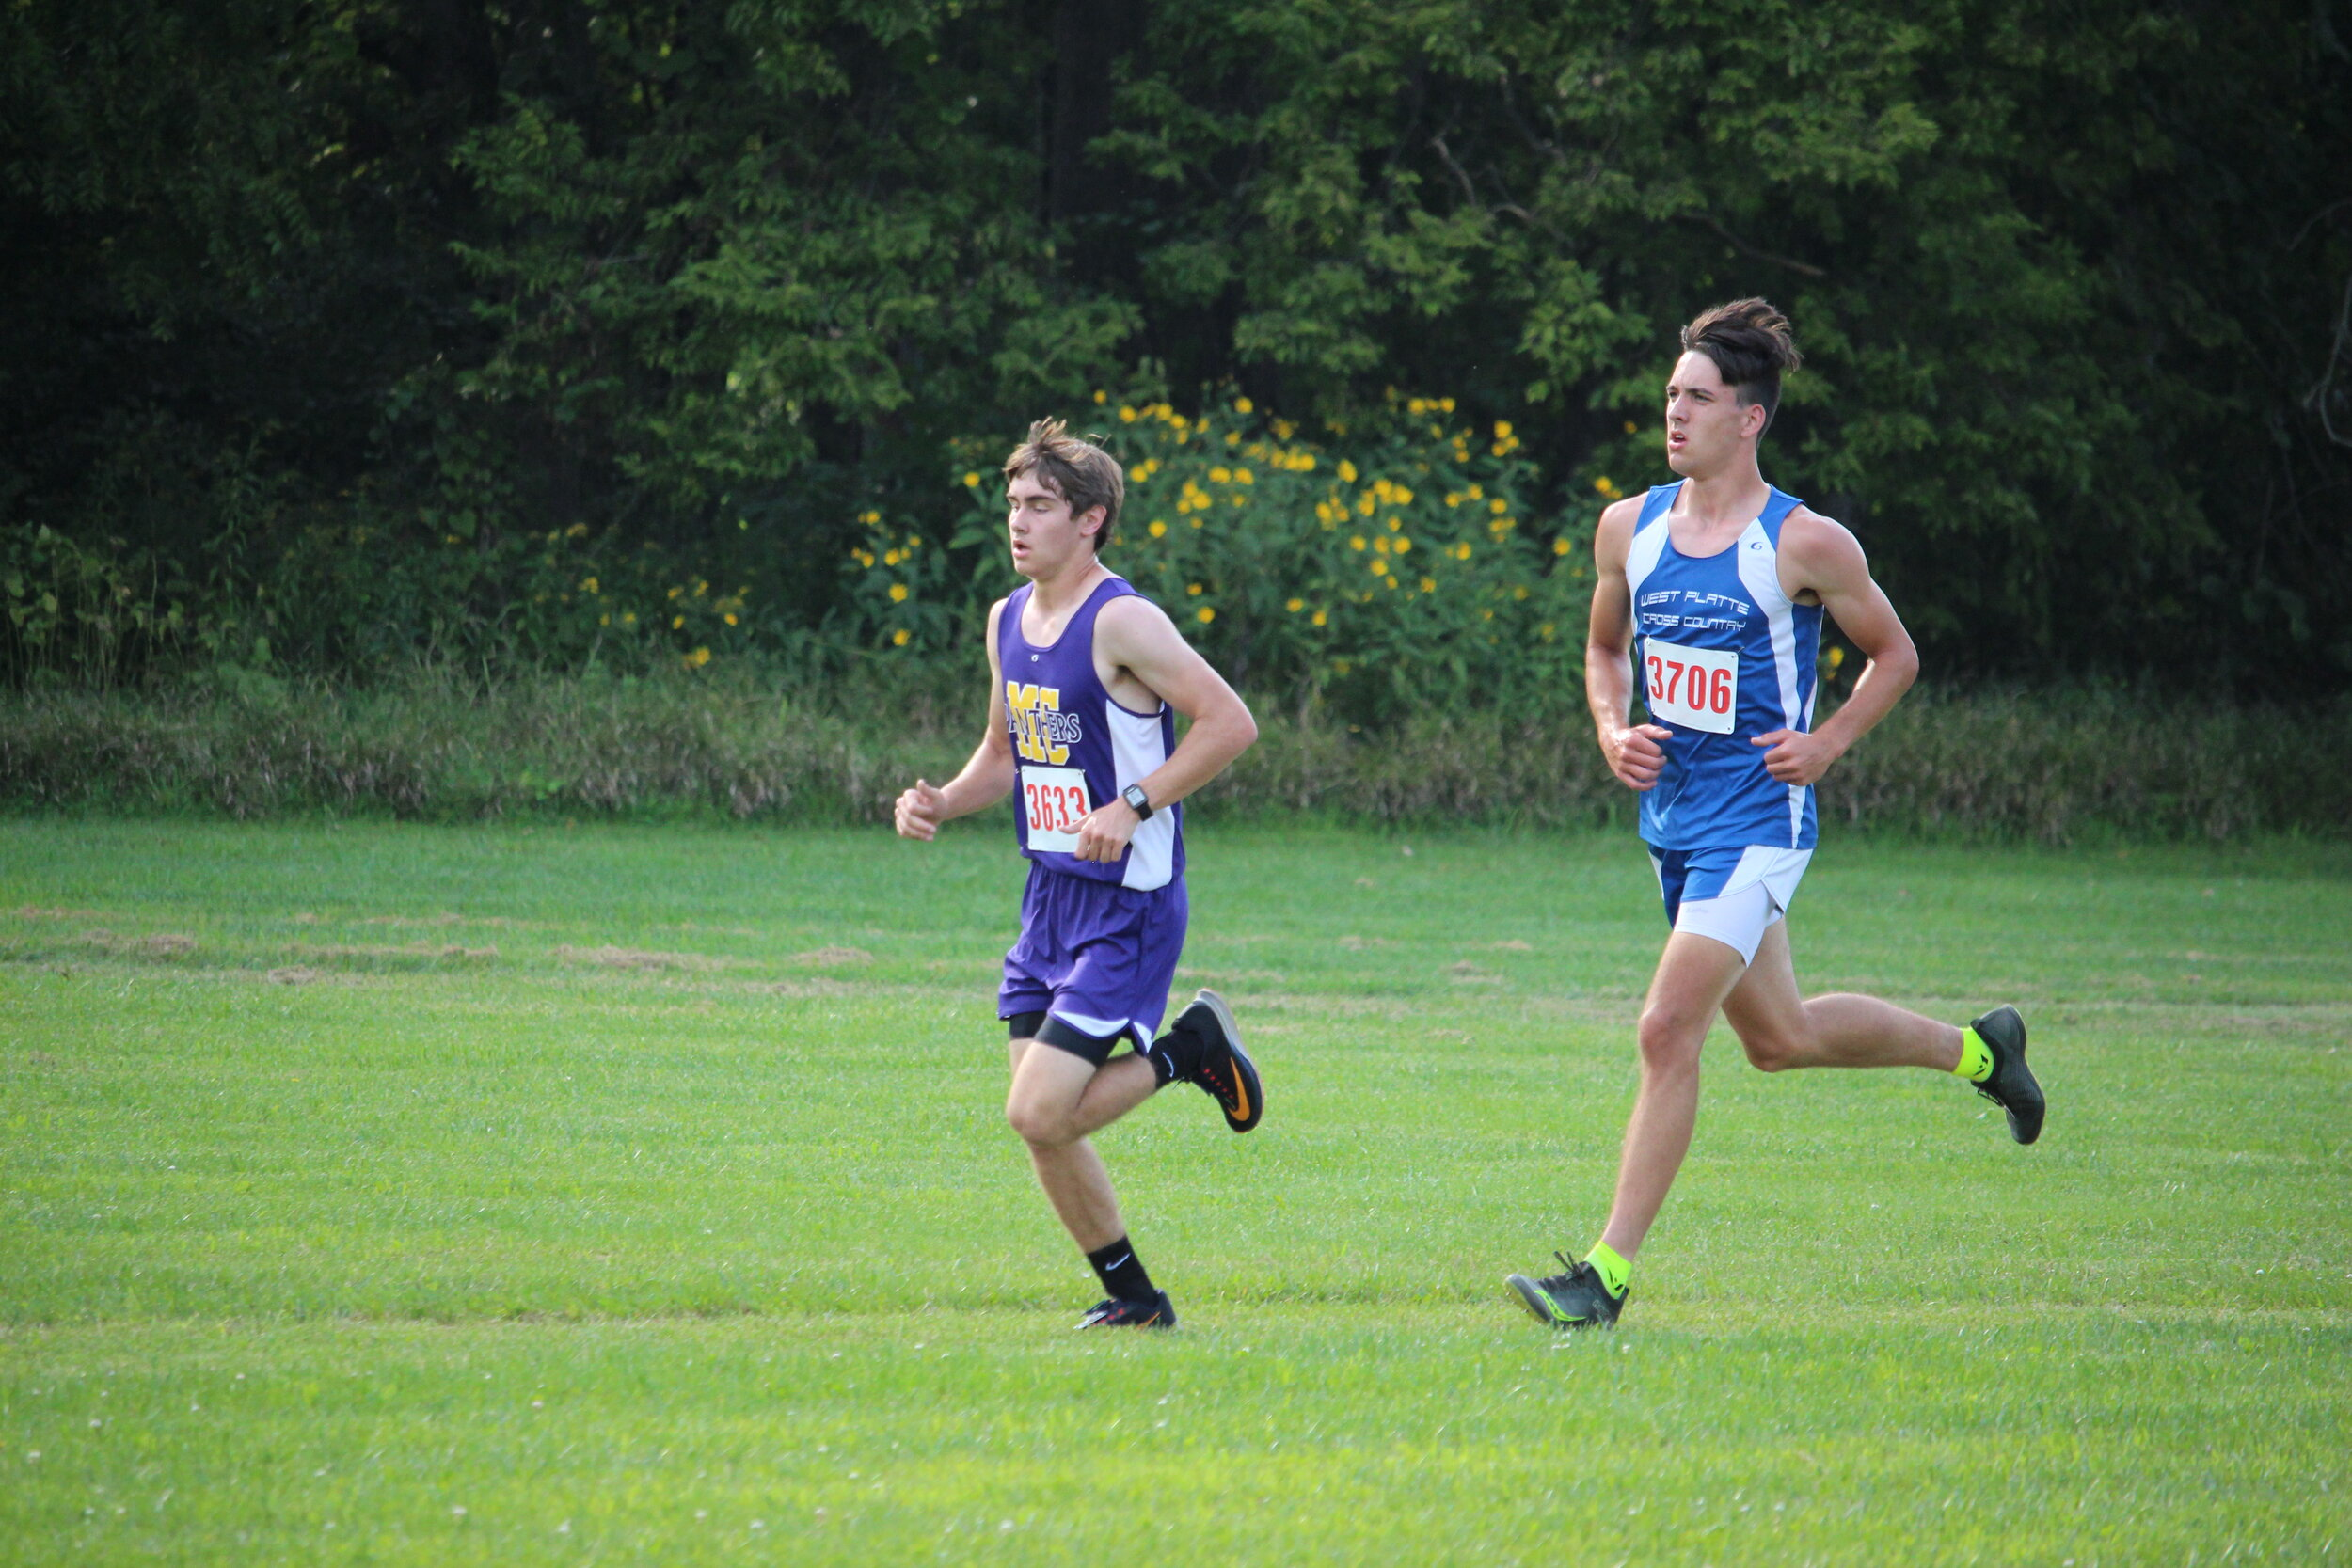 West Platte's Phillip Pattison, right, runs behind Mound City's Lane Zembles during the North Platte 2-miler race held on Tuesday, Sept. 3 in Dearborn. Pattison won the race and then won his second race of the season on Saturday in Lee's Summit.  CODY THORN/Citizen photo